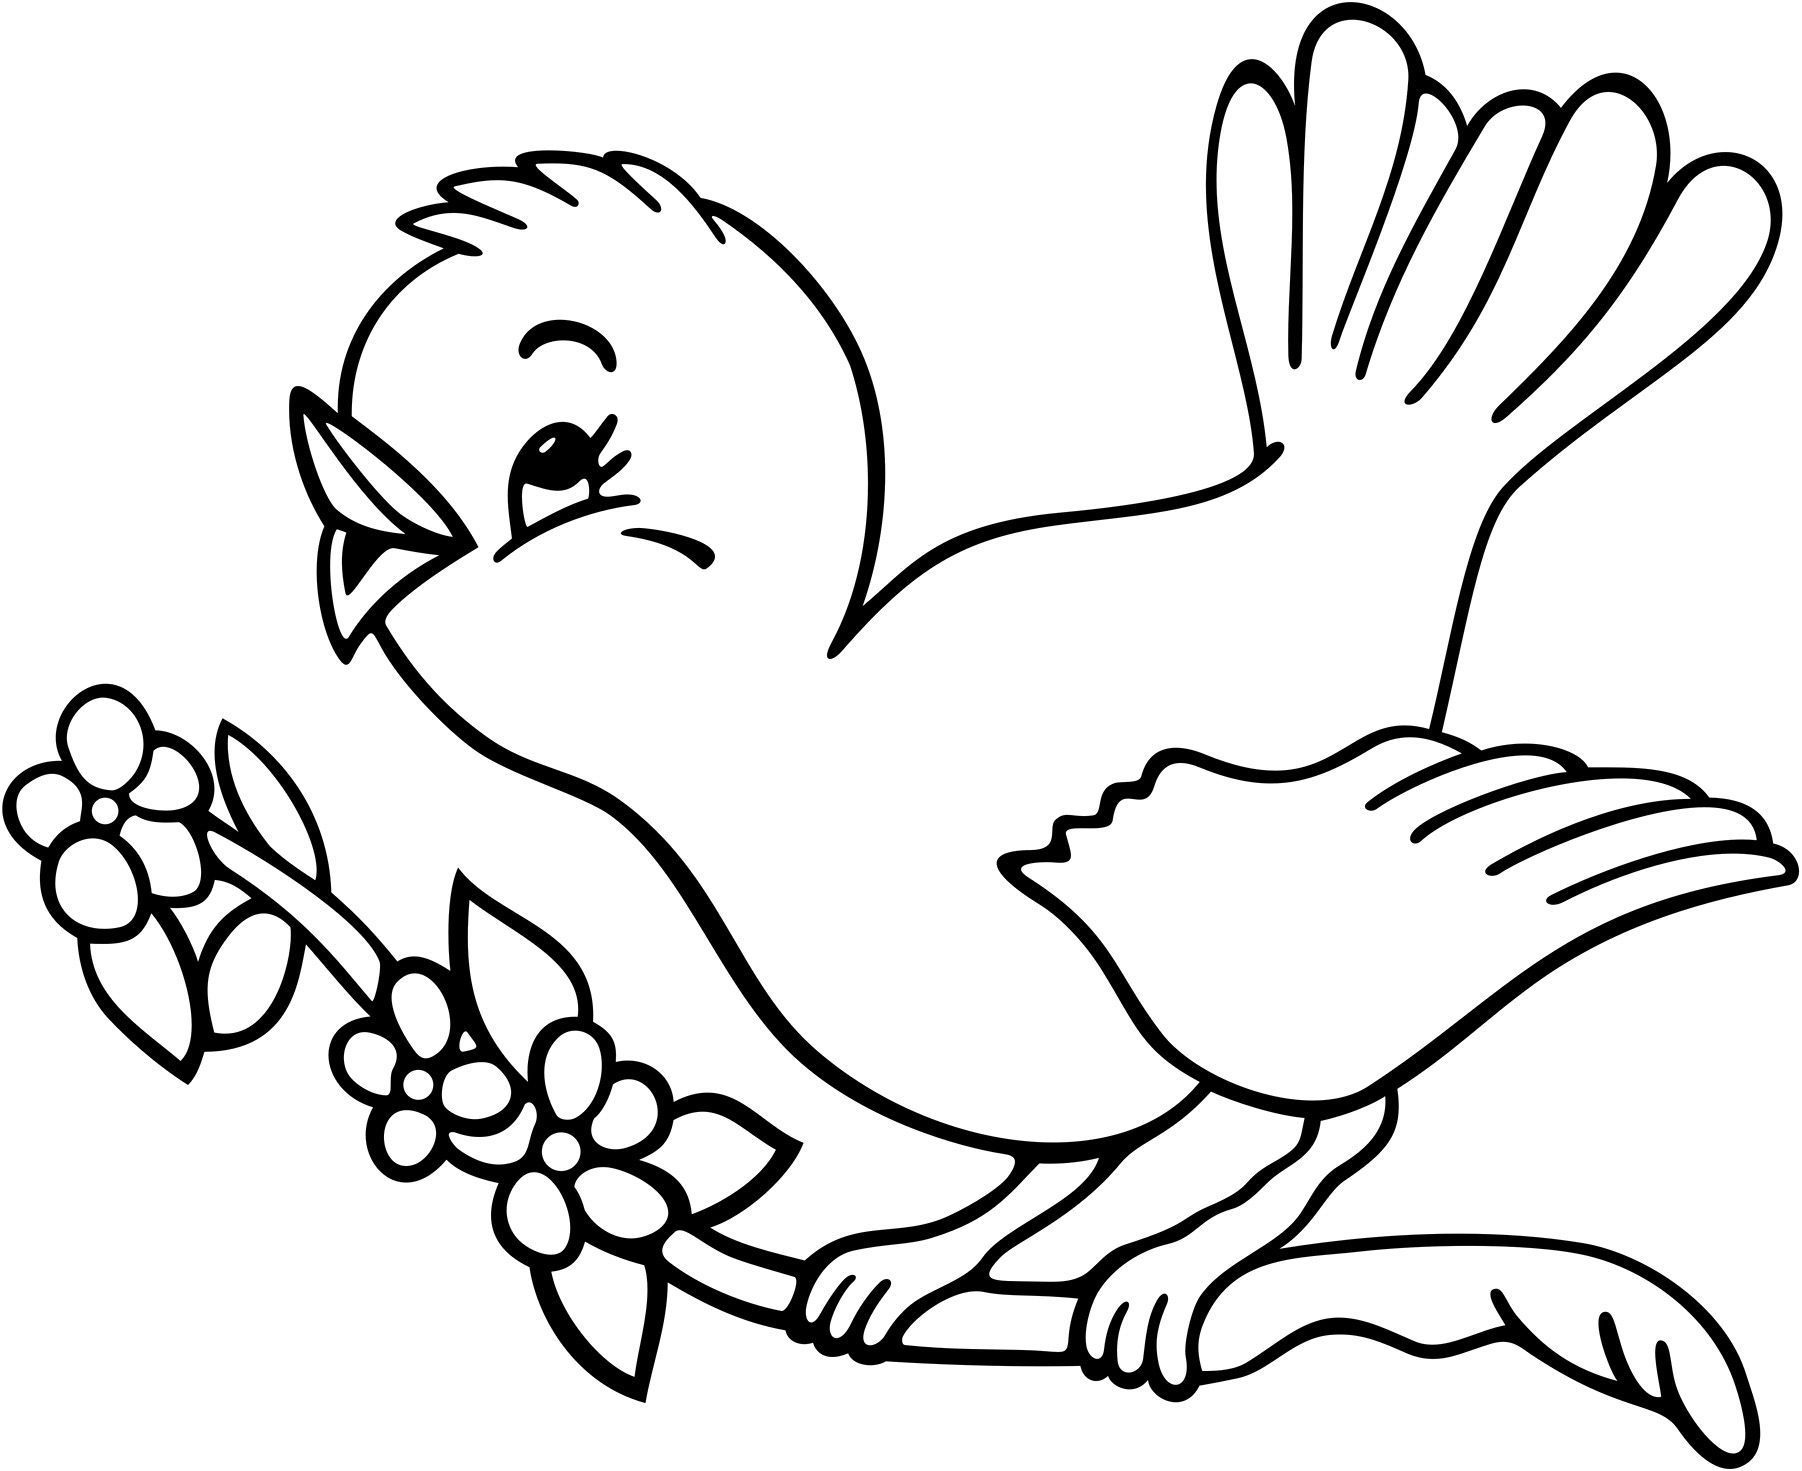 1802x1471 Bird Coloring Page Bird Coloring Pages View Larger To Print Home